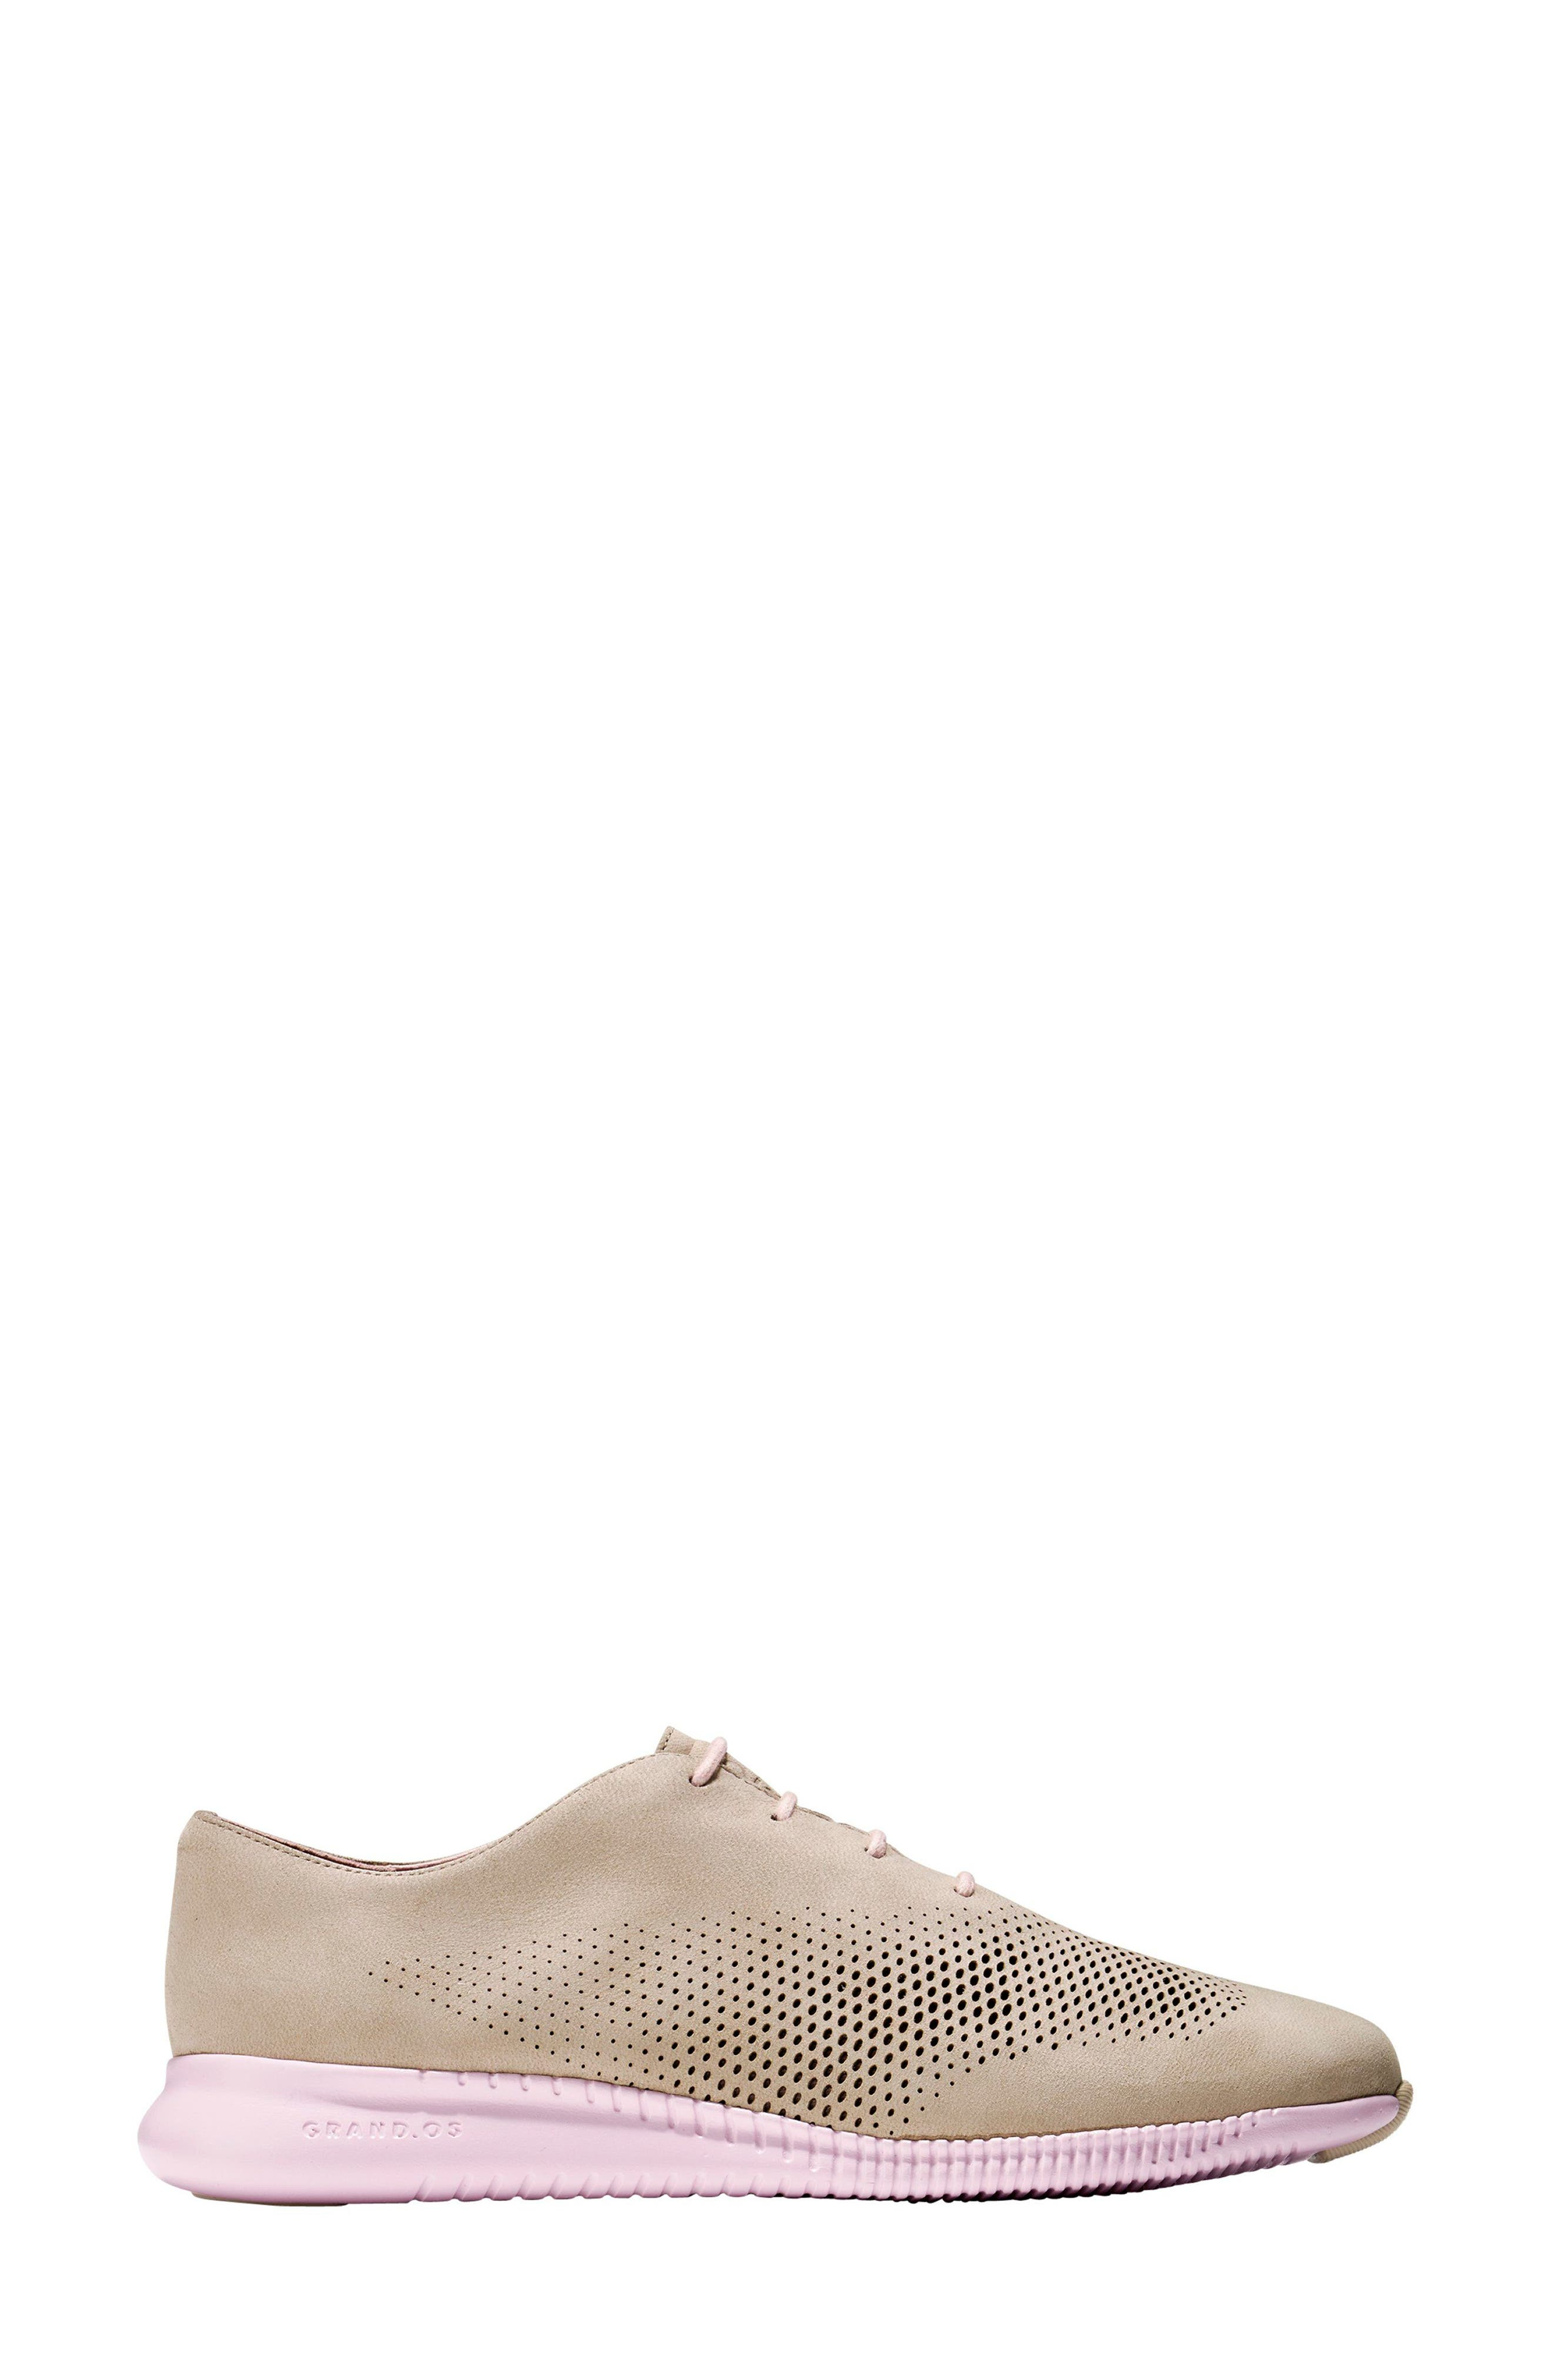 'ZeroGrand' Perforated Wingtip,                             Alternate thumbnail 3, color,                             Barley/ Pale Lilac Nubuck